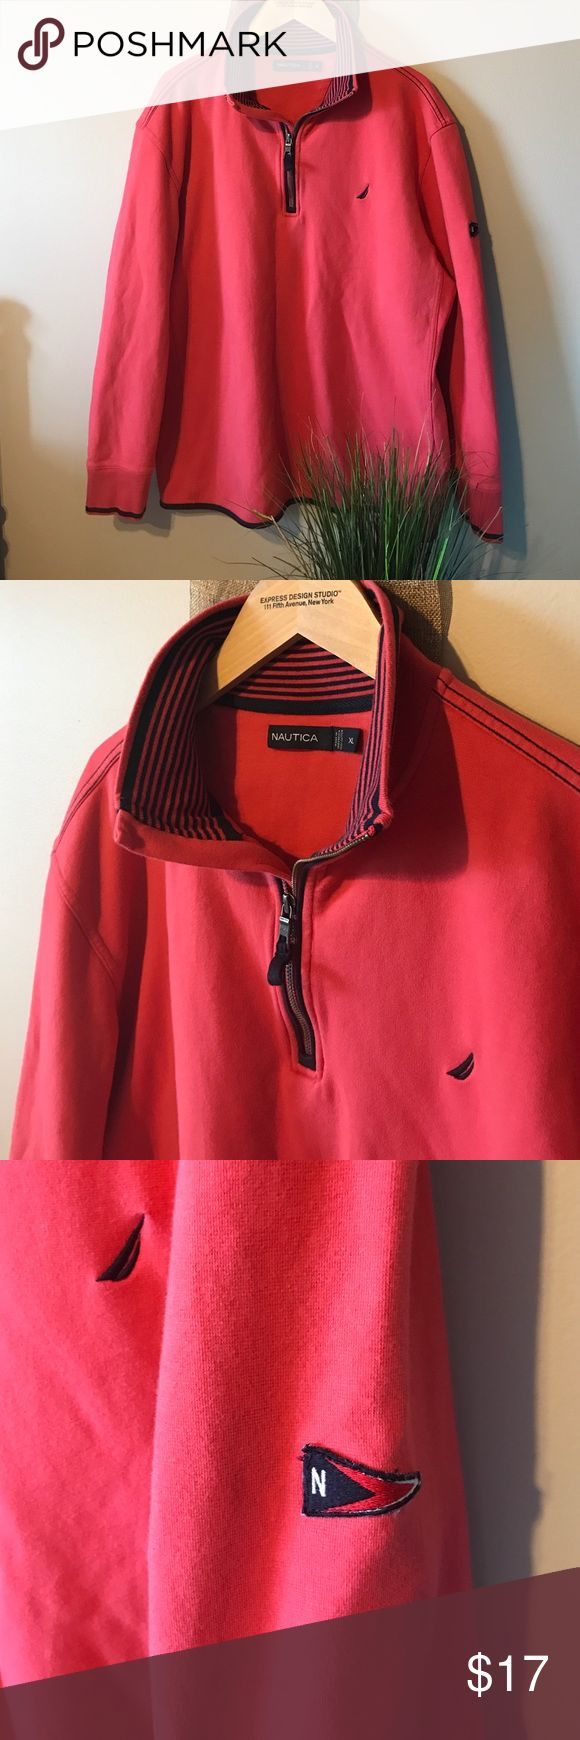 🆕 listing! Men's nautica pullover! Salmon- perfect spring color! This is a medium weight 1/4 zip pullover. In good used condition, no flaws! Shows minimal signs of wear from wash. Accent color is navy! Nautica Sweaters Zip Up